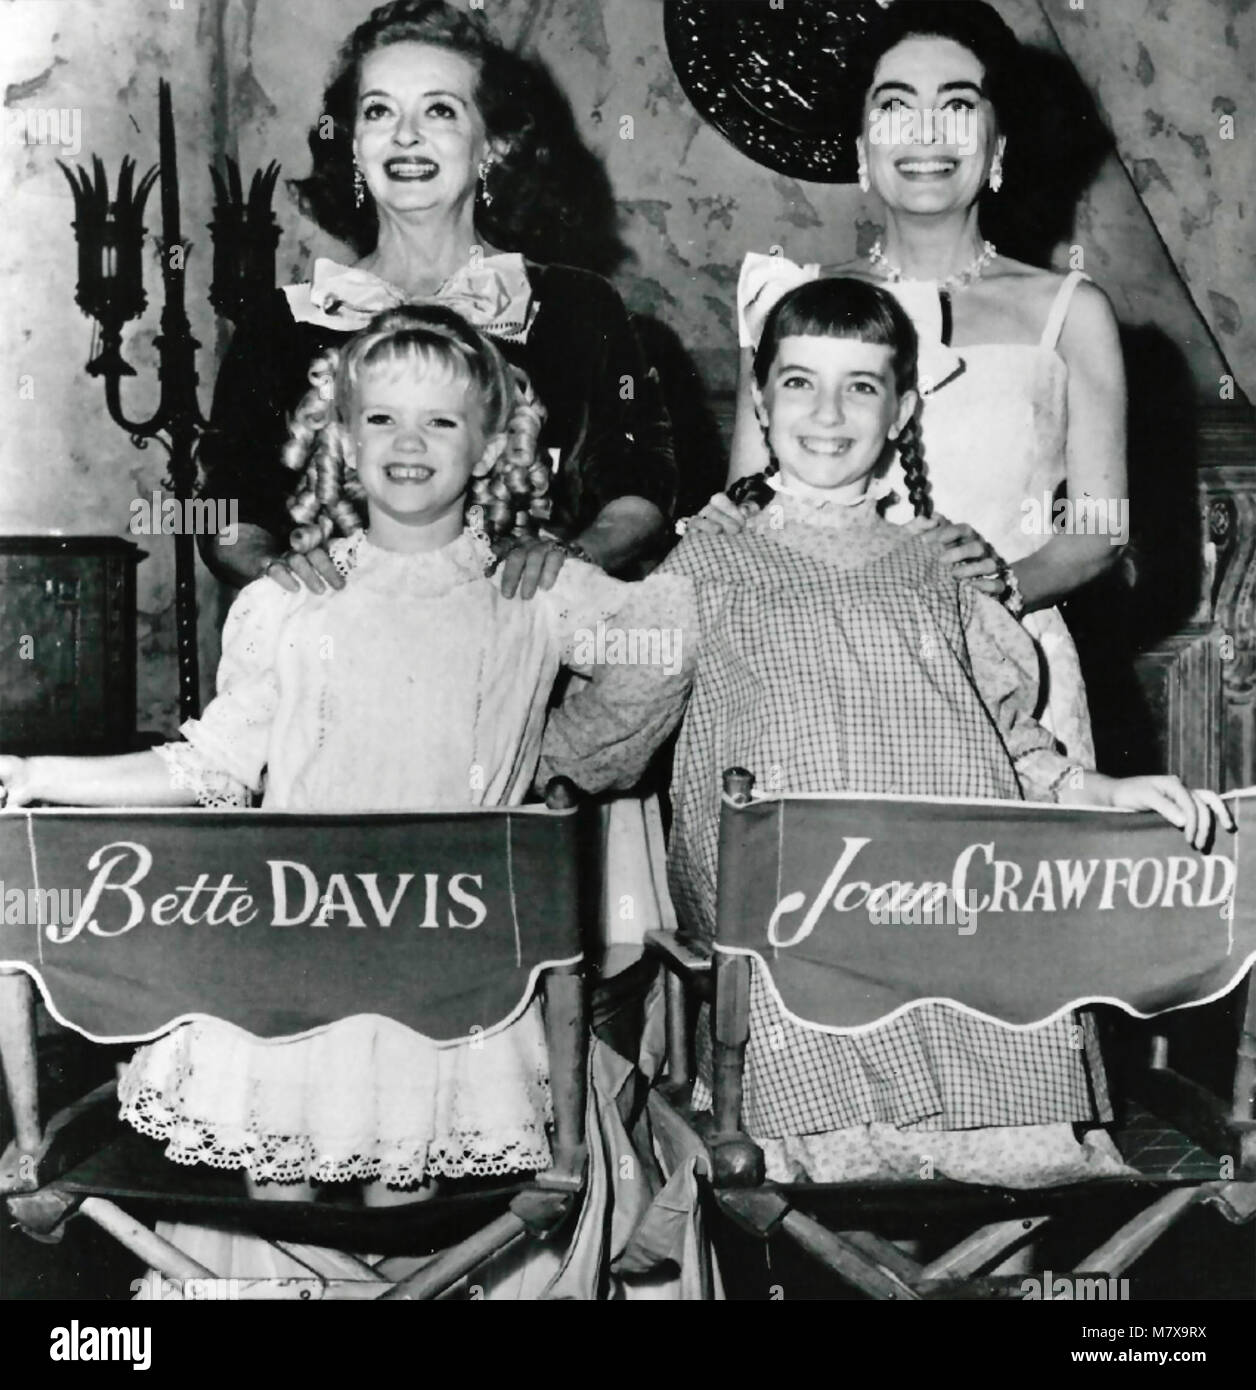 BETTE DAVIS (left) and Joan Crawford with their daughters (need ids) - Stock Image